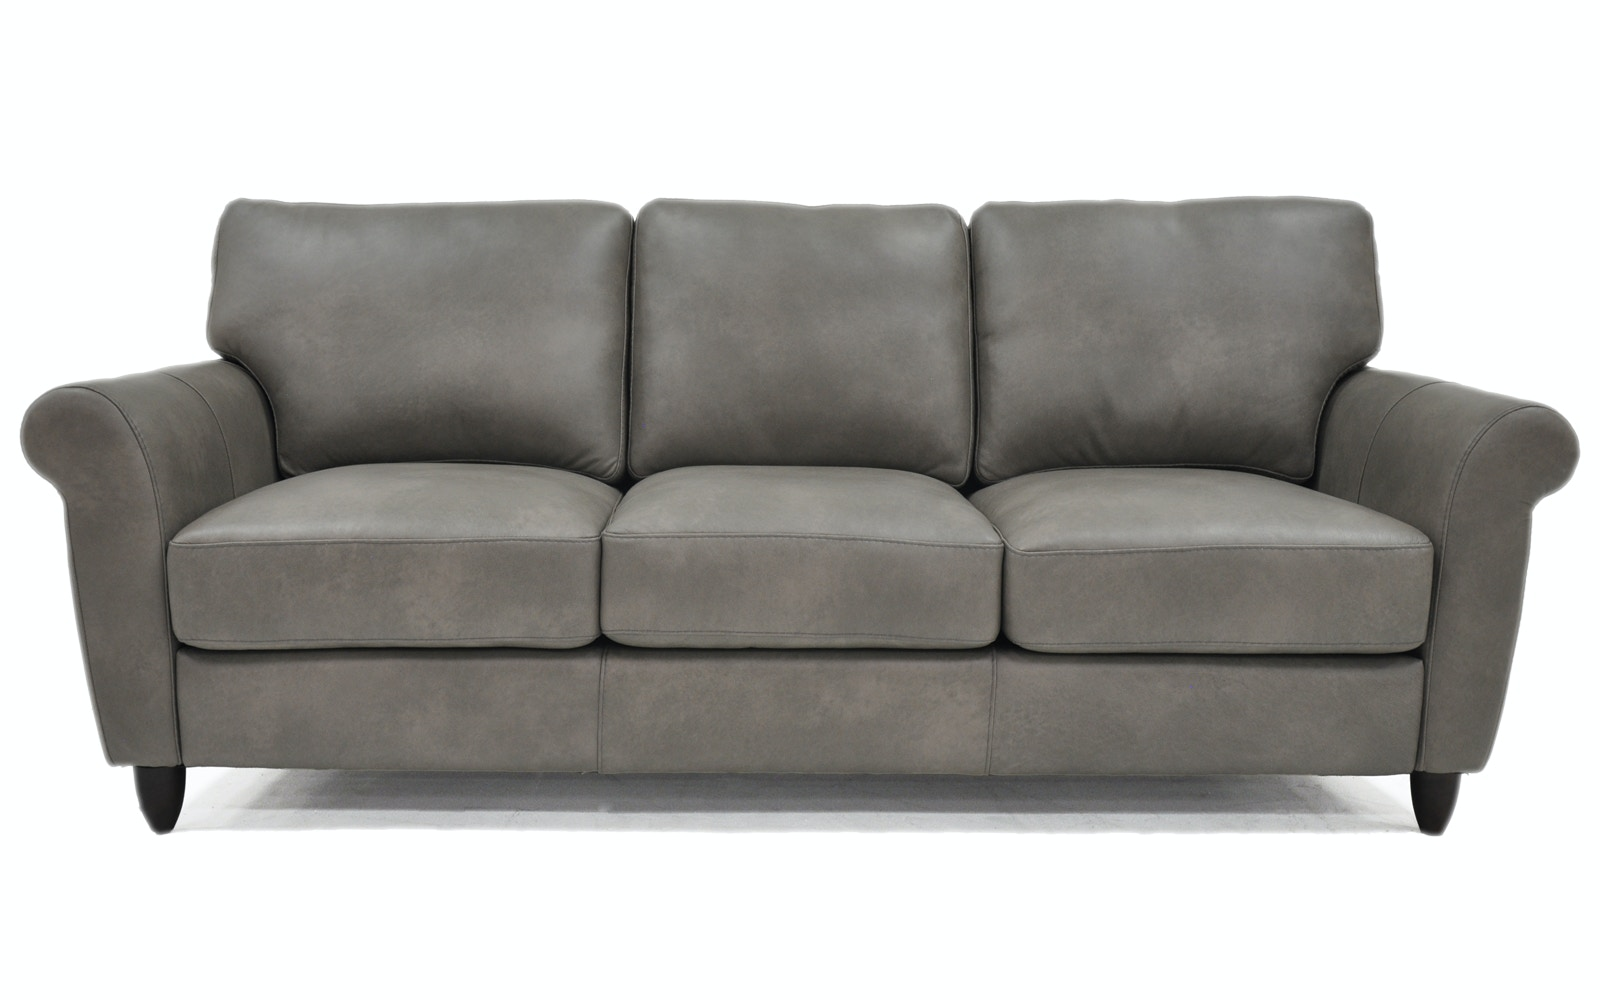 CAMEO. CAMEO LEATHER SOFA